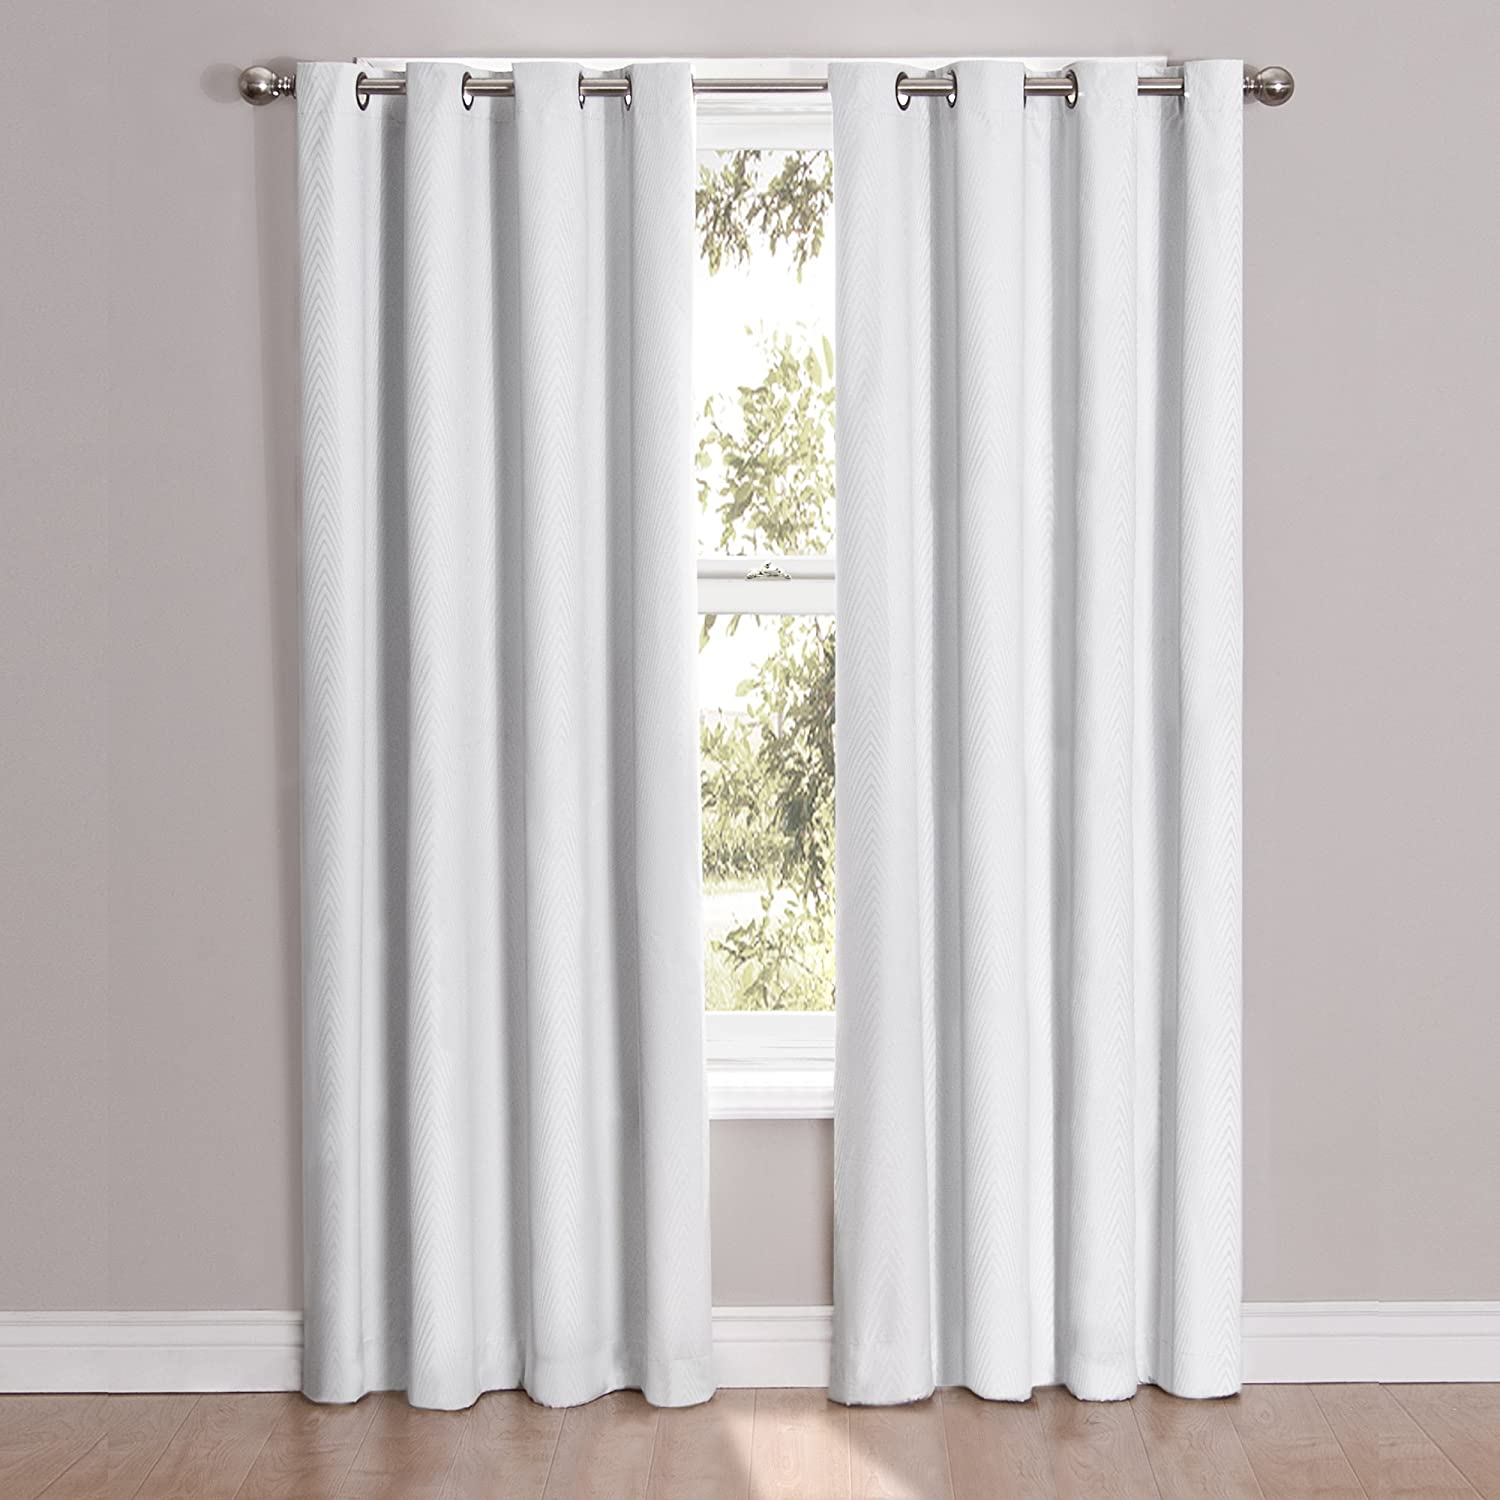 Amazon Eclipse 12423052063WHI Cassidy 52 Inch By 63 Blackout Grommet Single Window Curtain Panel White Reflects Grey Home Kitchen